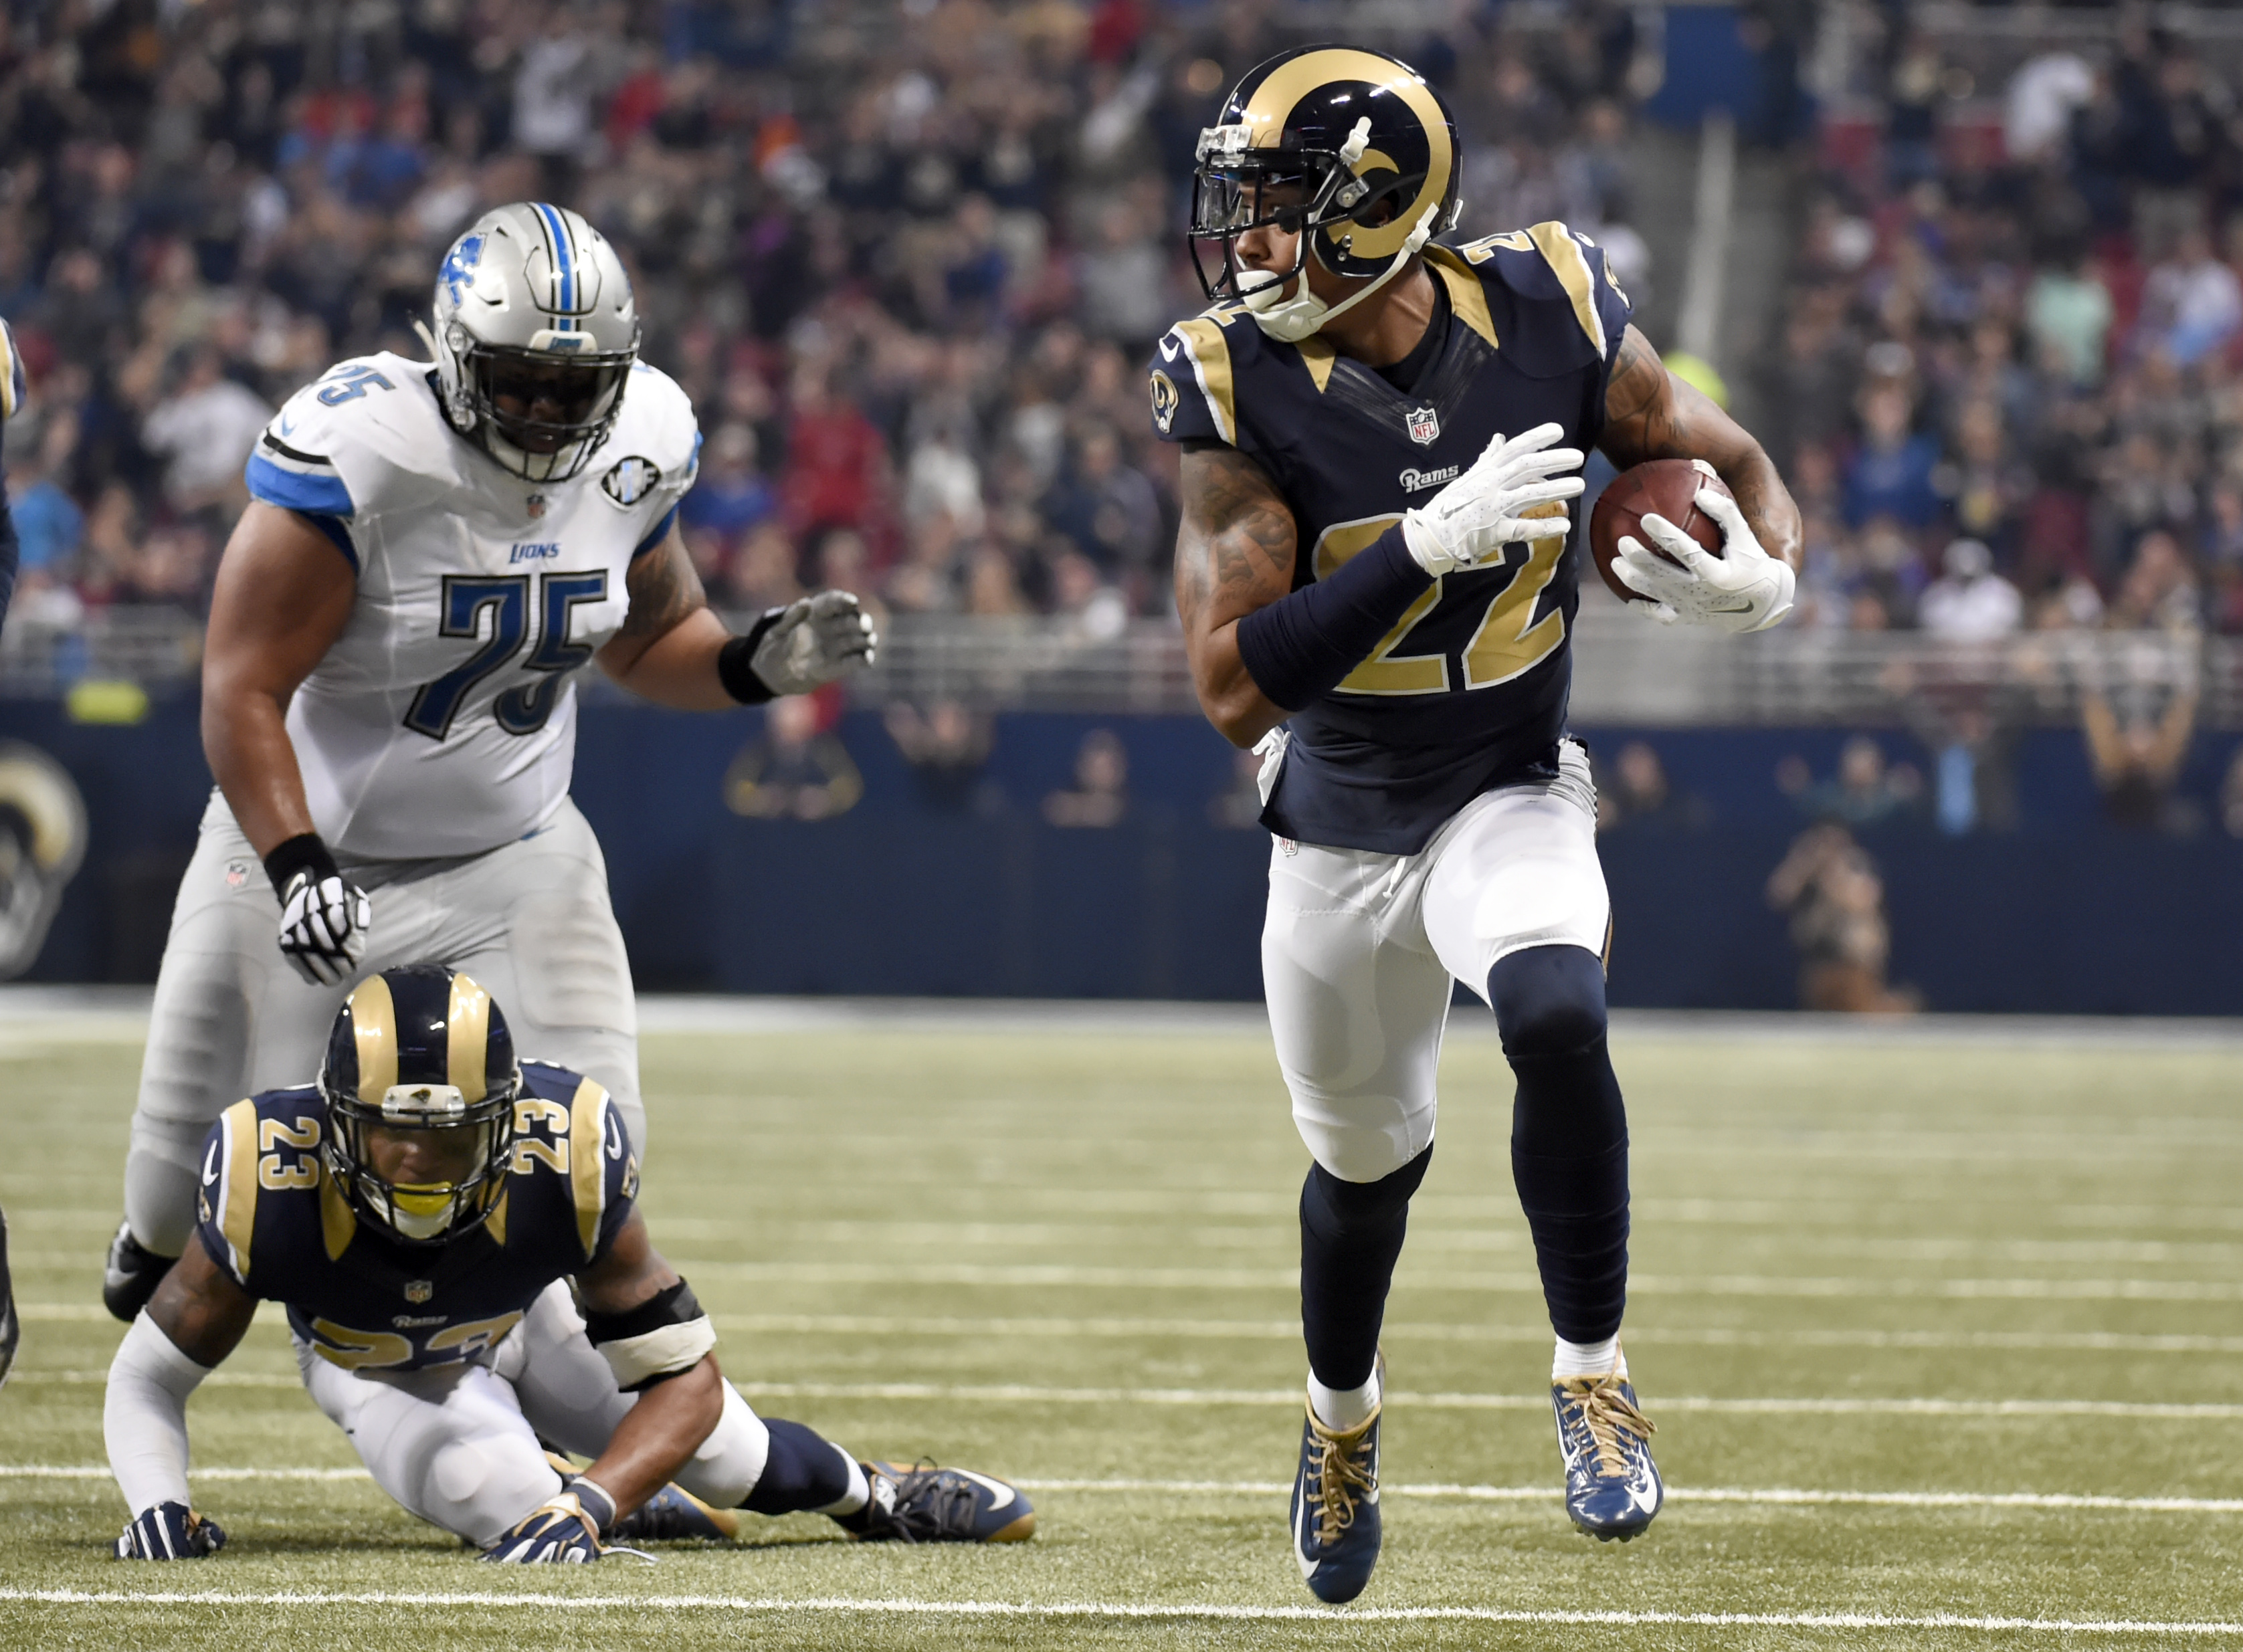 St. Louis Rams cornerback Trumaine Johnson, right, runs an interception back 58-yards for a touchdown as teammate Rodney McLeod (23) and Detroit Lions guard Larry Warford (75) watch during the second quarter of an NFL football game Sunday, Dec. 13, 2015,